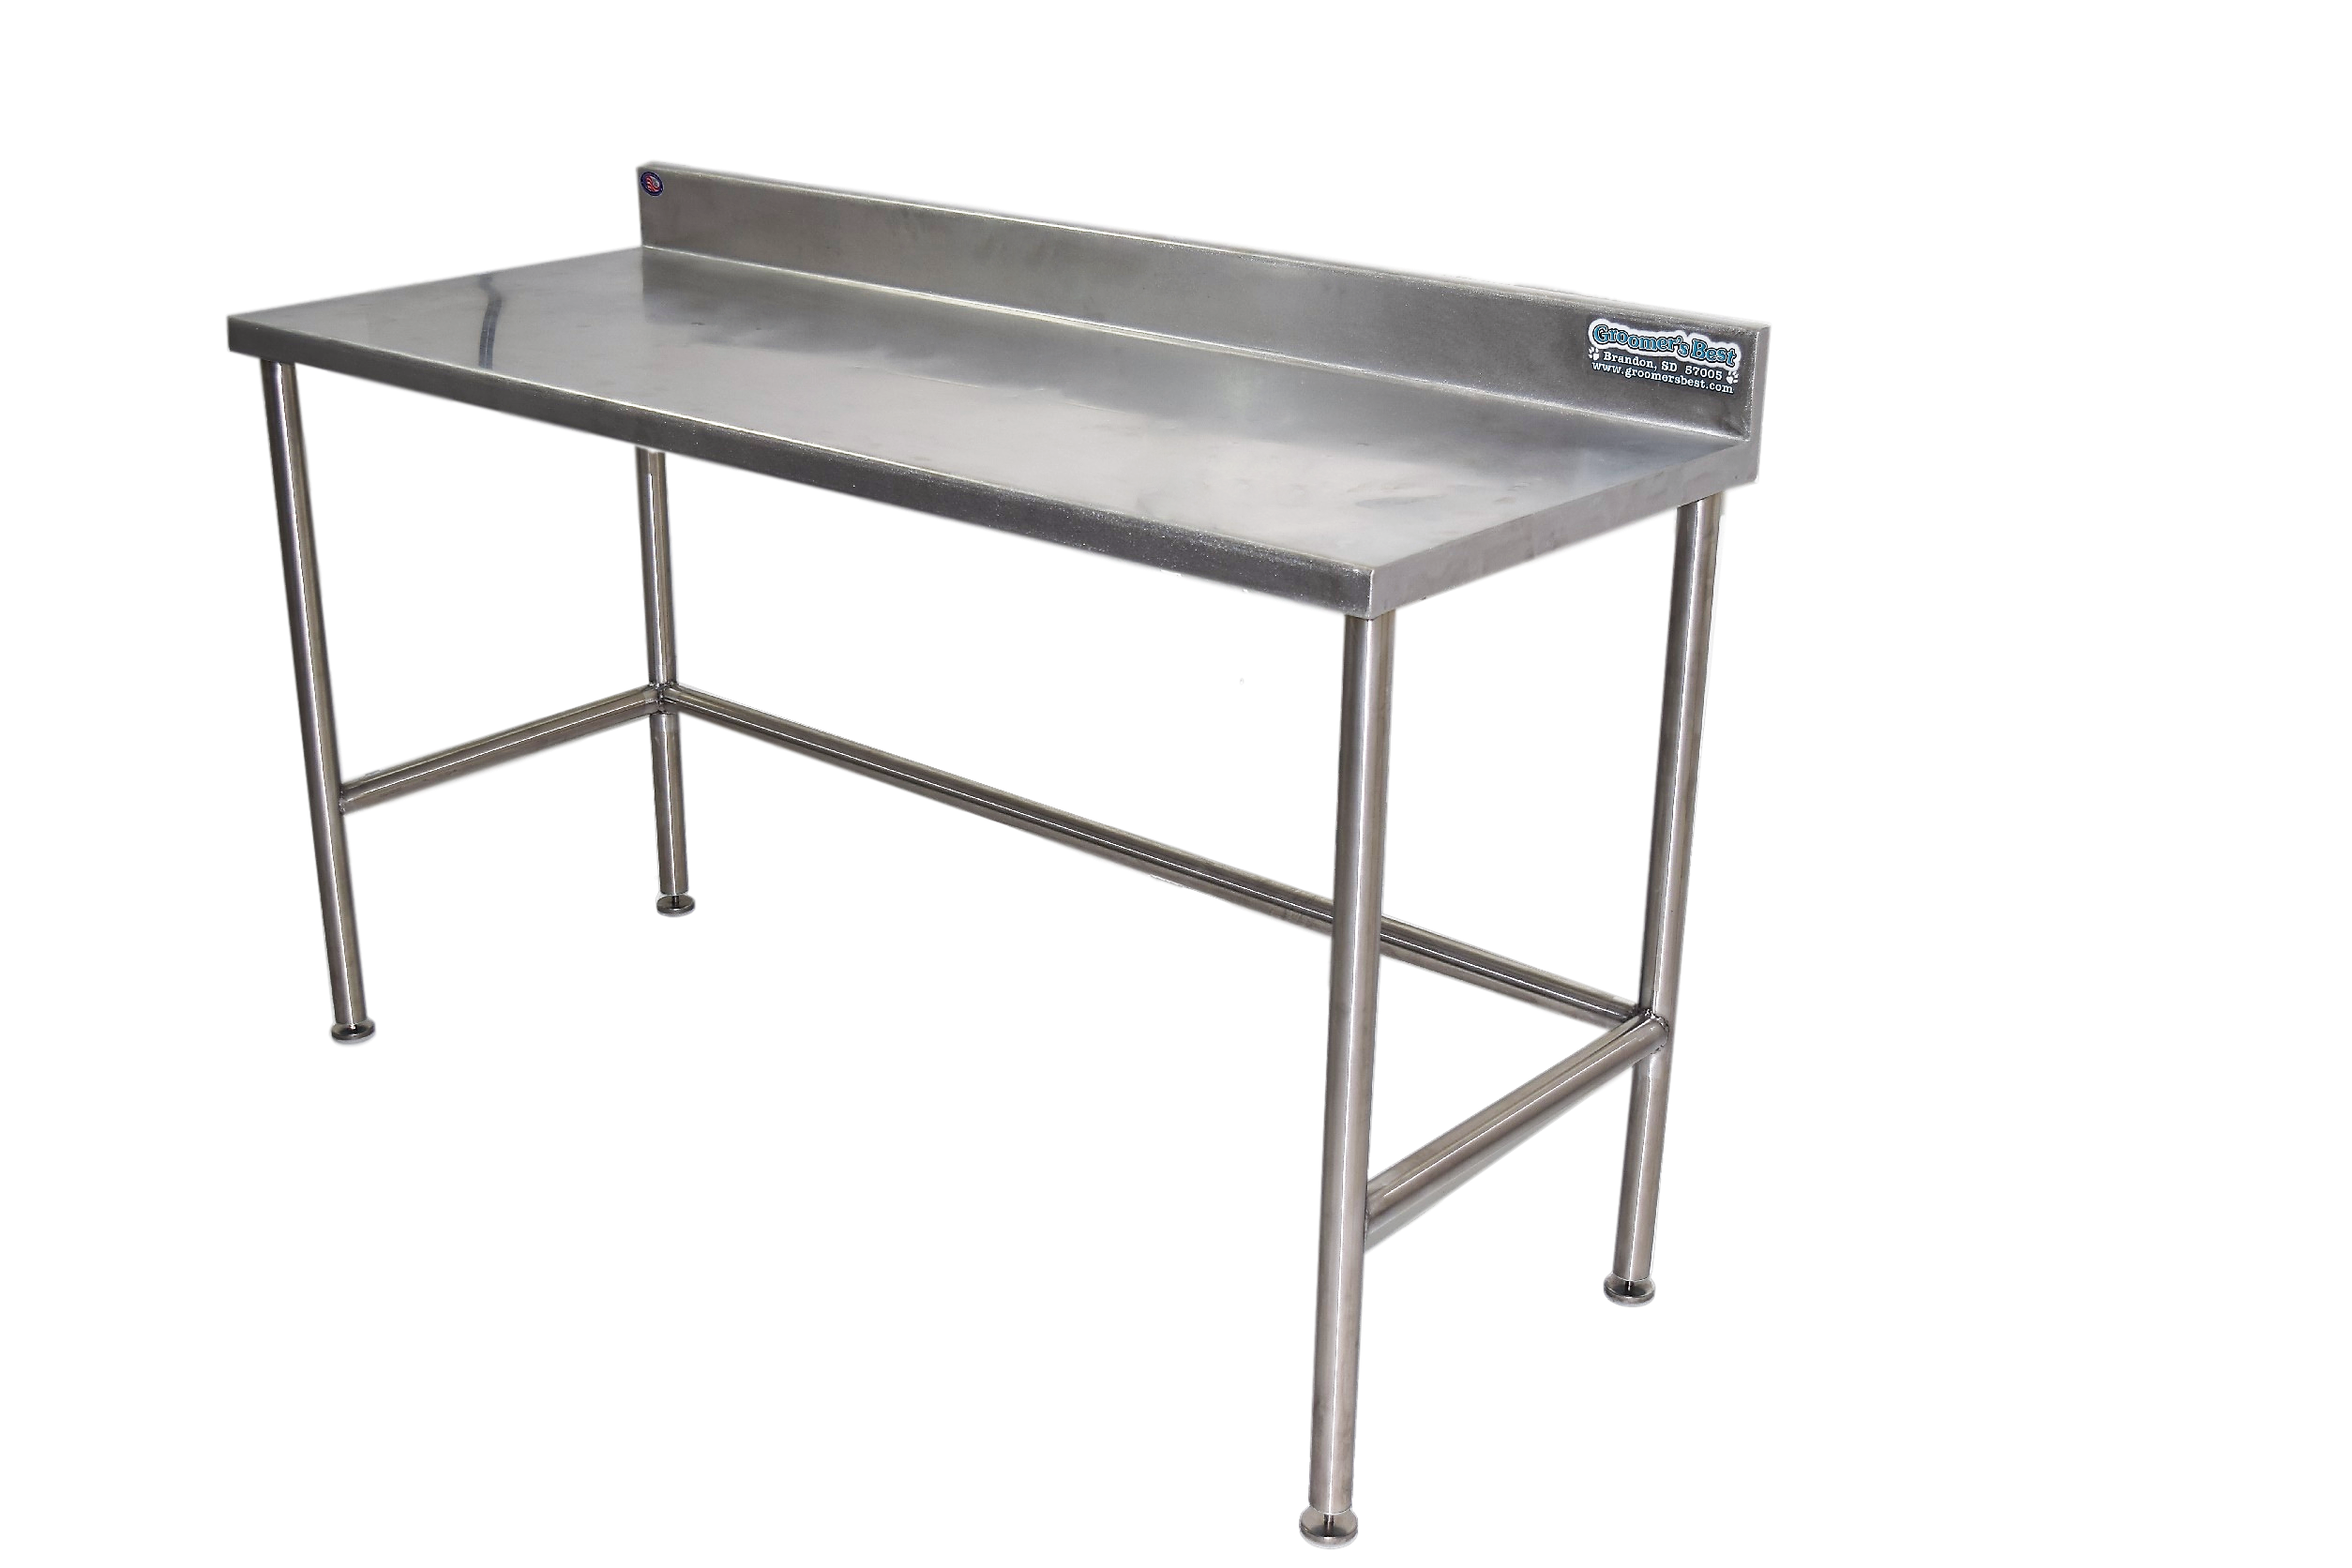 Groomers Best Heavy Duty Stainless Steel Work Table. The